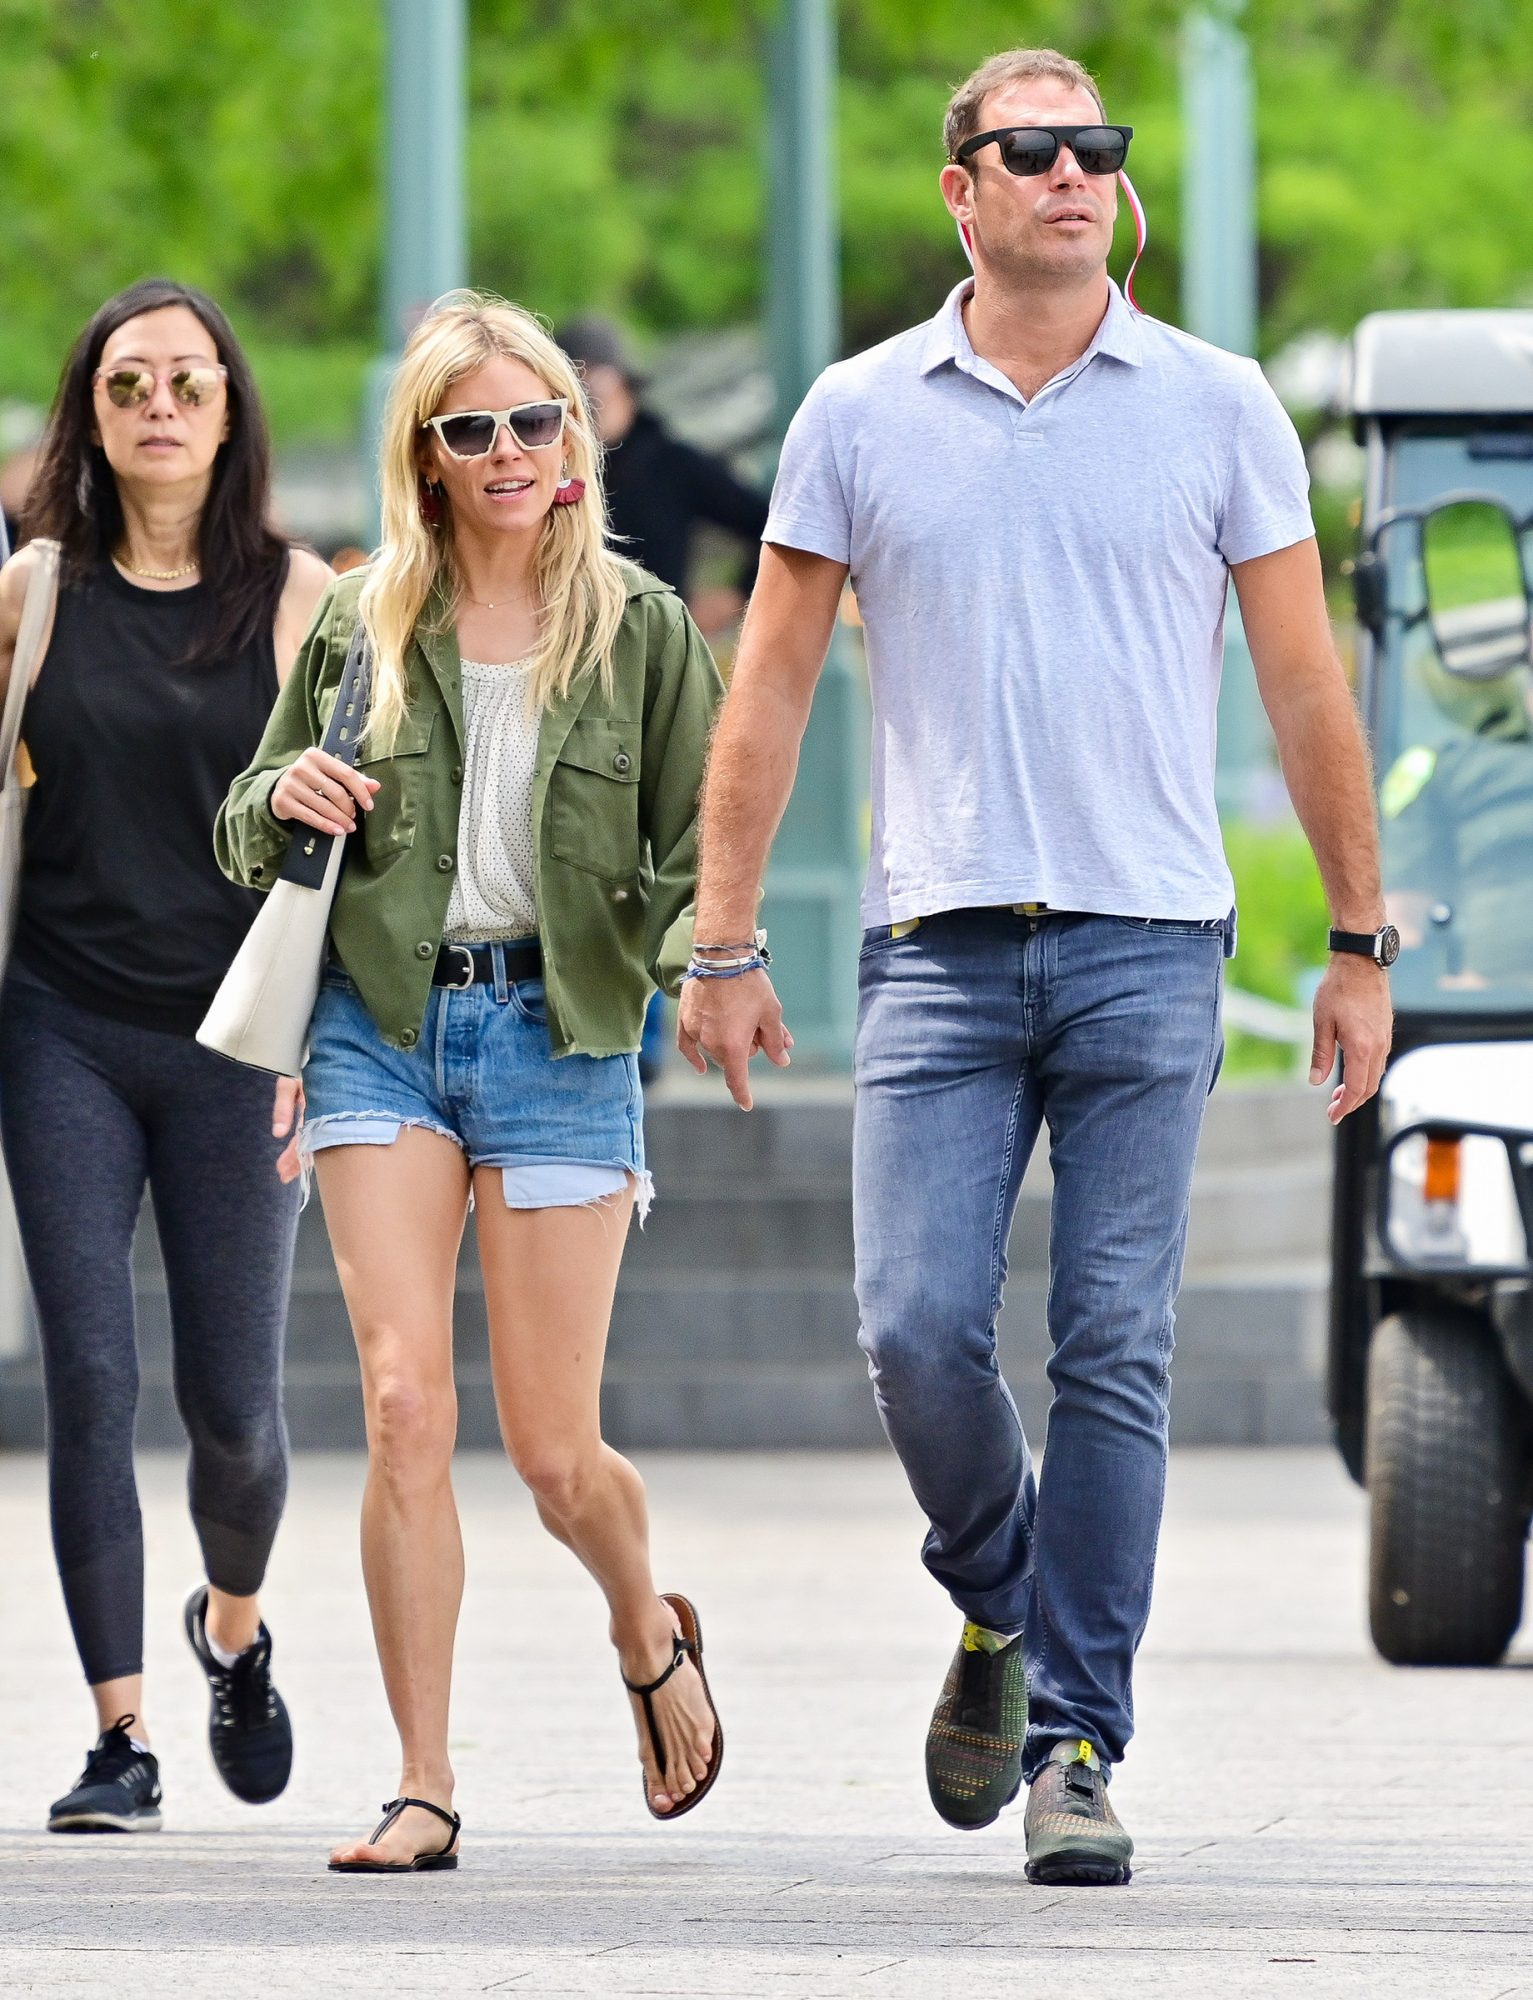 Sienna Miller and Archie Keswick hold hands in Hudson River Park on June 01, 2021 in New York City